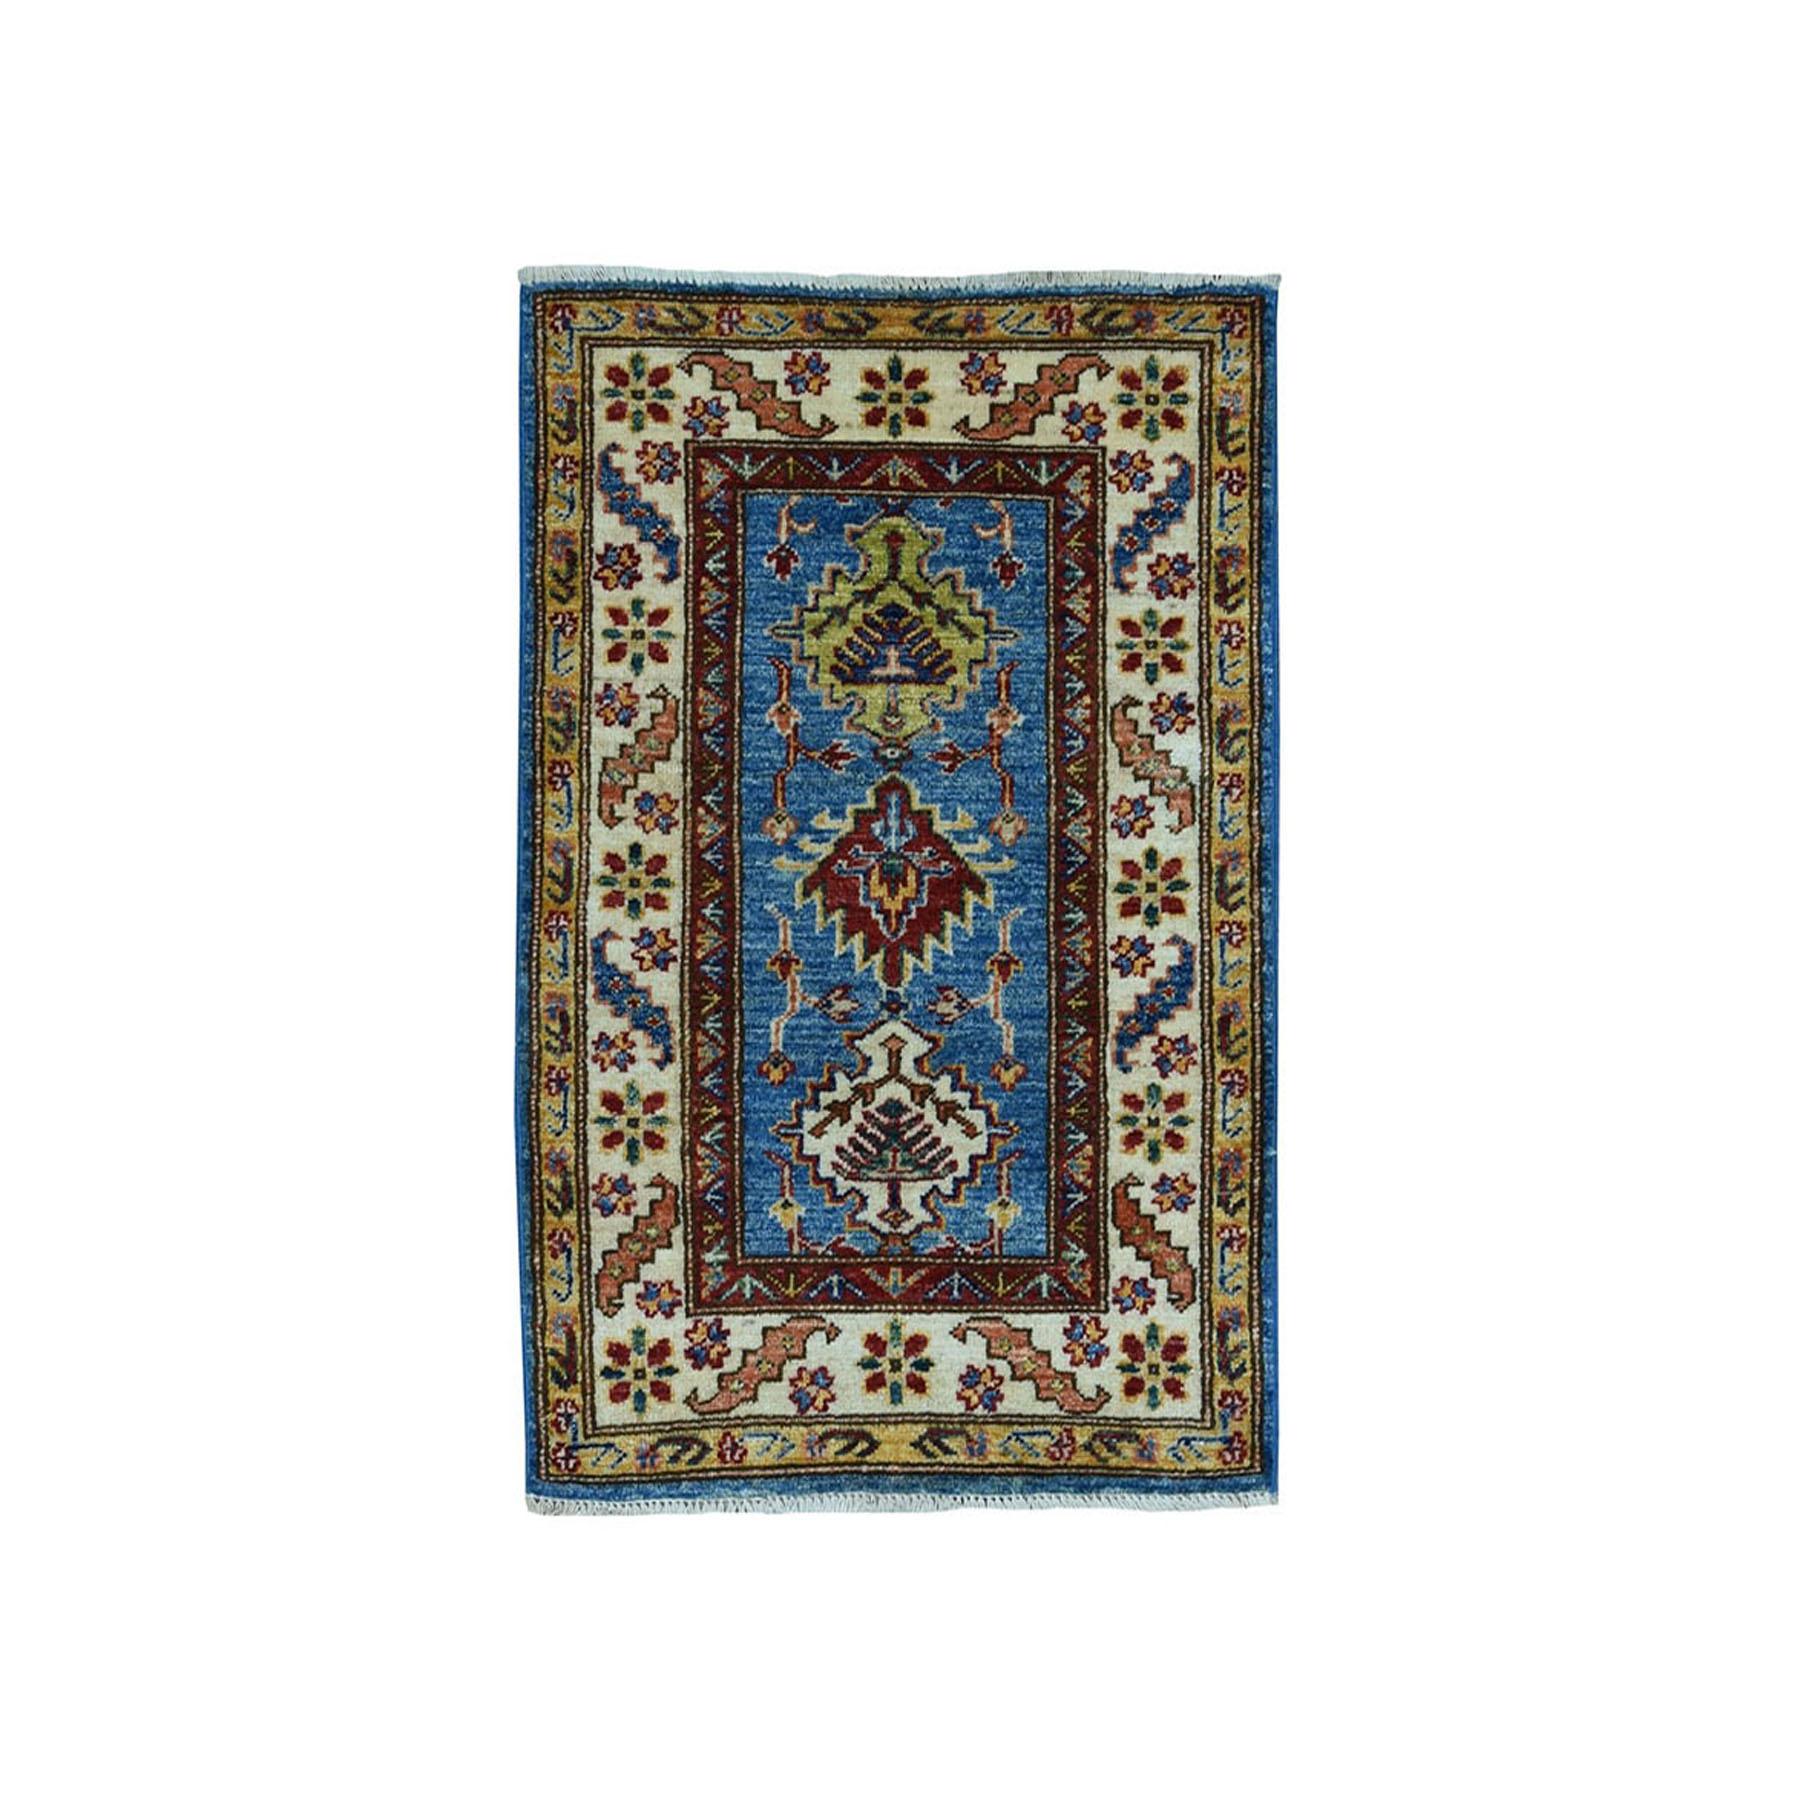 2'X3' Blue Super Kazak Geometric Design Pure Wool Hand-Knotted Oriental Rug moaea070